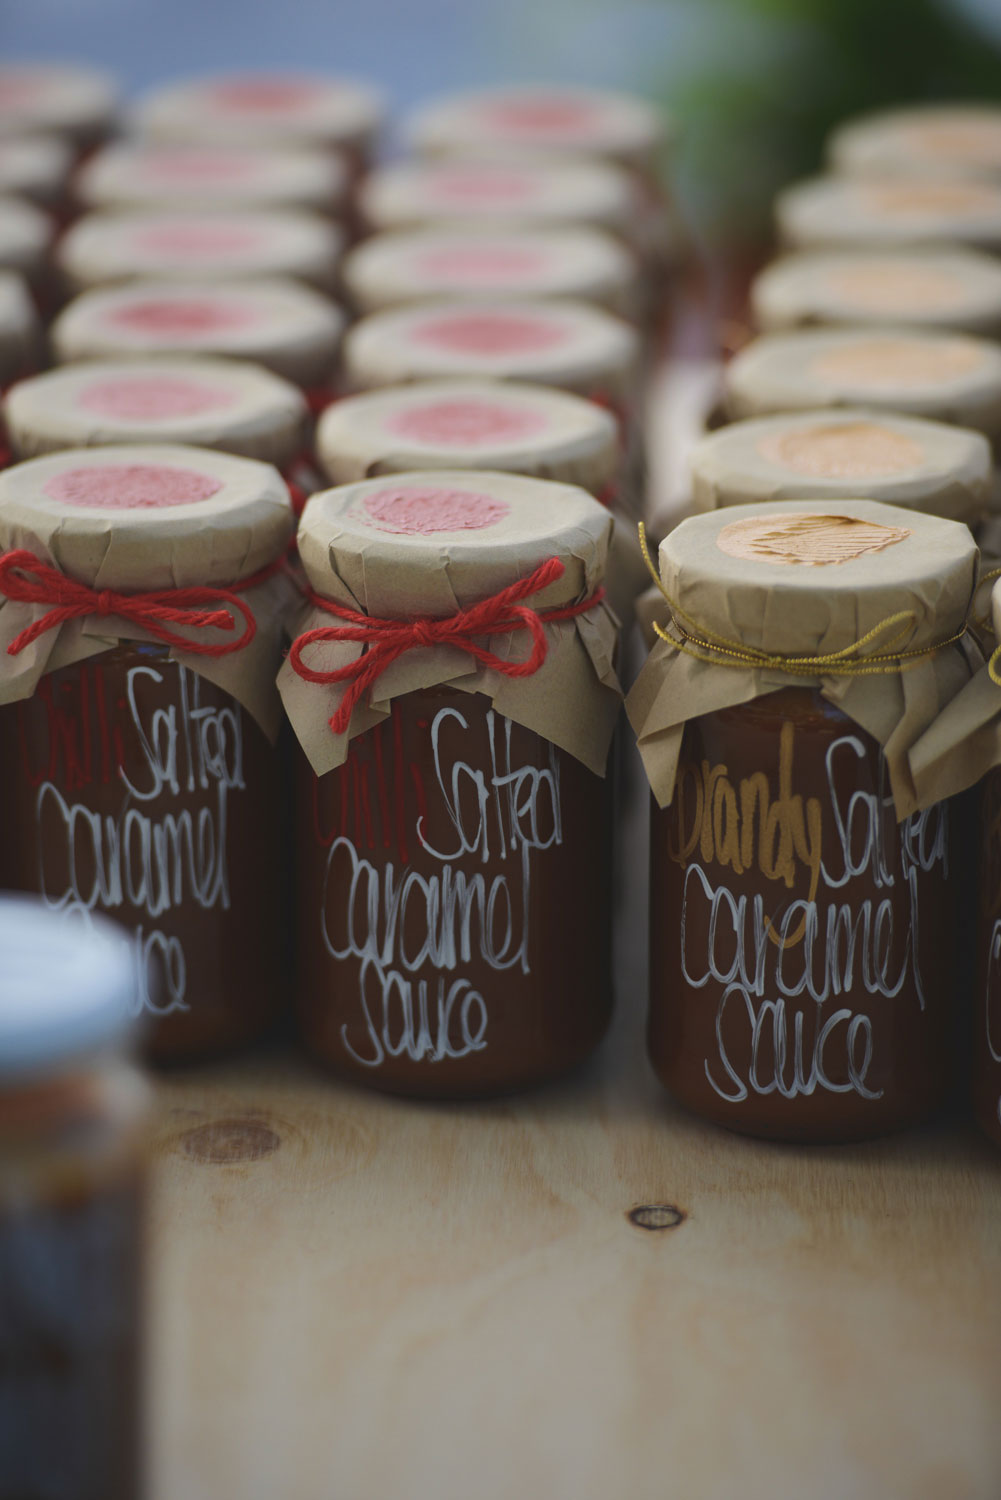 Meet the Maker : Salted Caramel Sauce